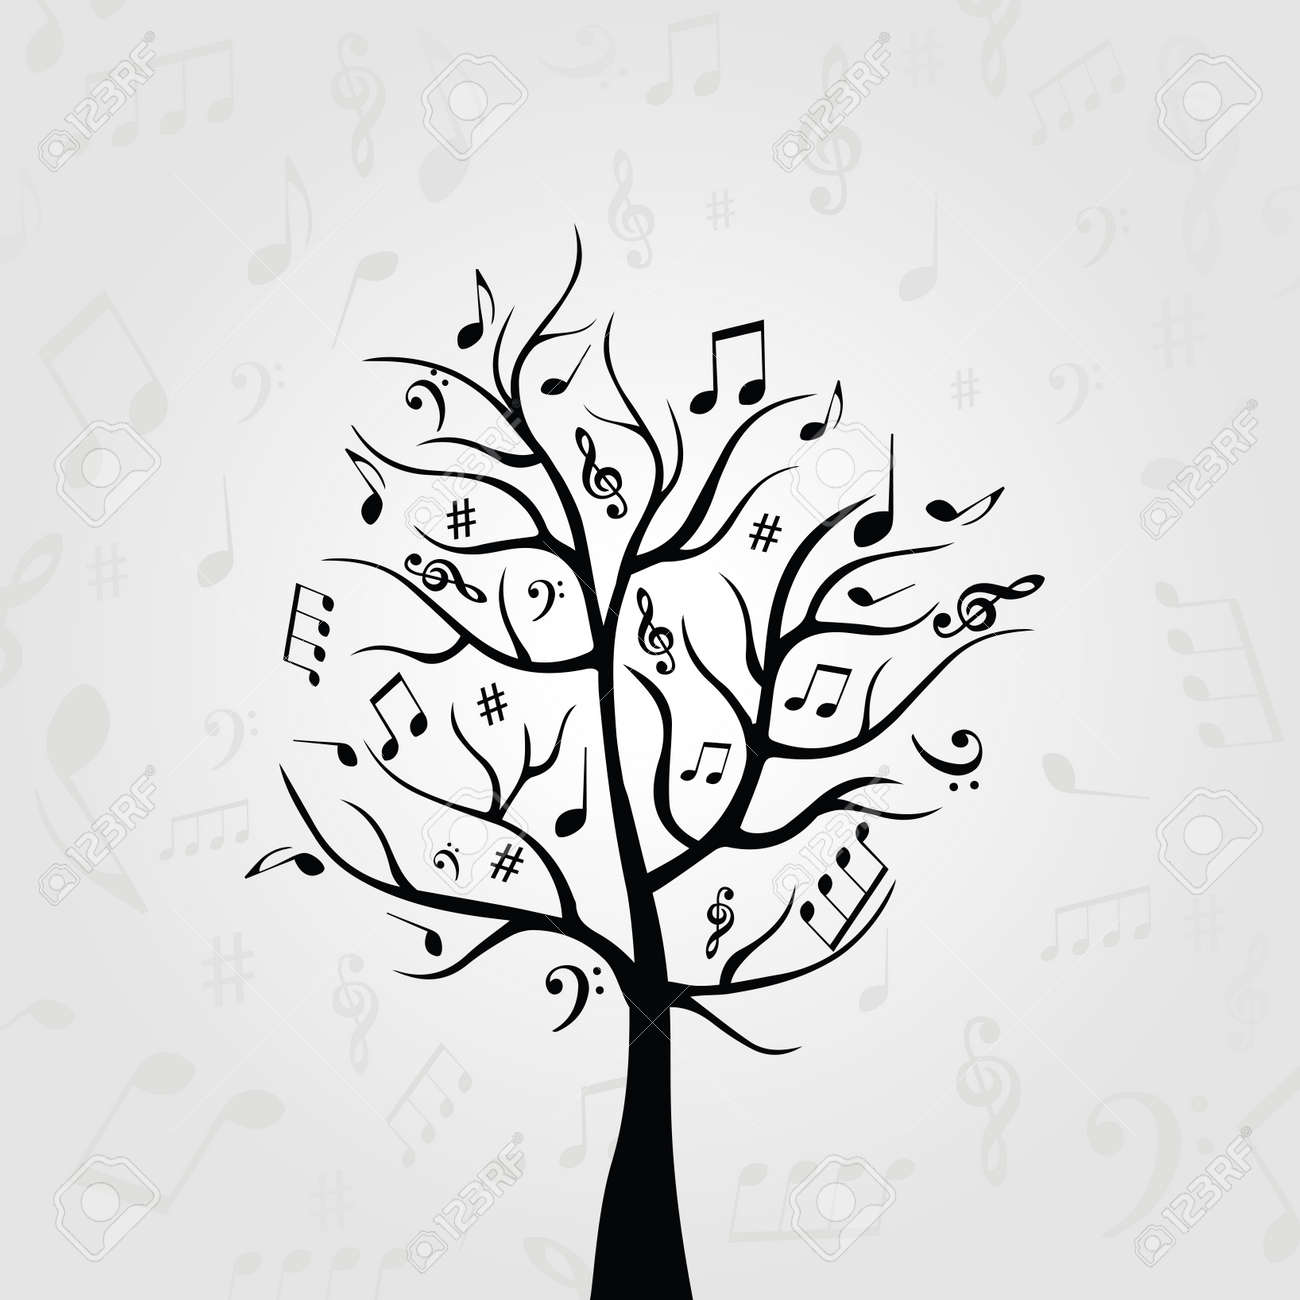 Black And White Music Tree With Music Notes Music Symbols For Royalty Free Cliparts Vectors And Stock Illustration Image 88000161